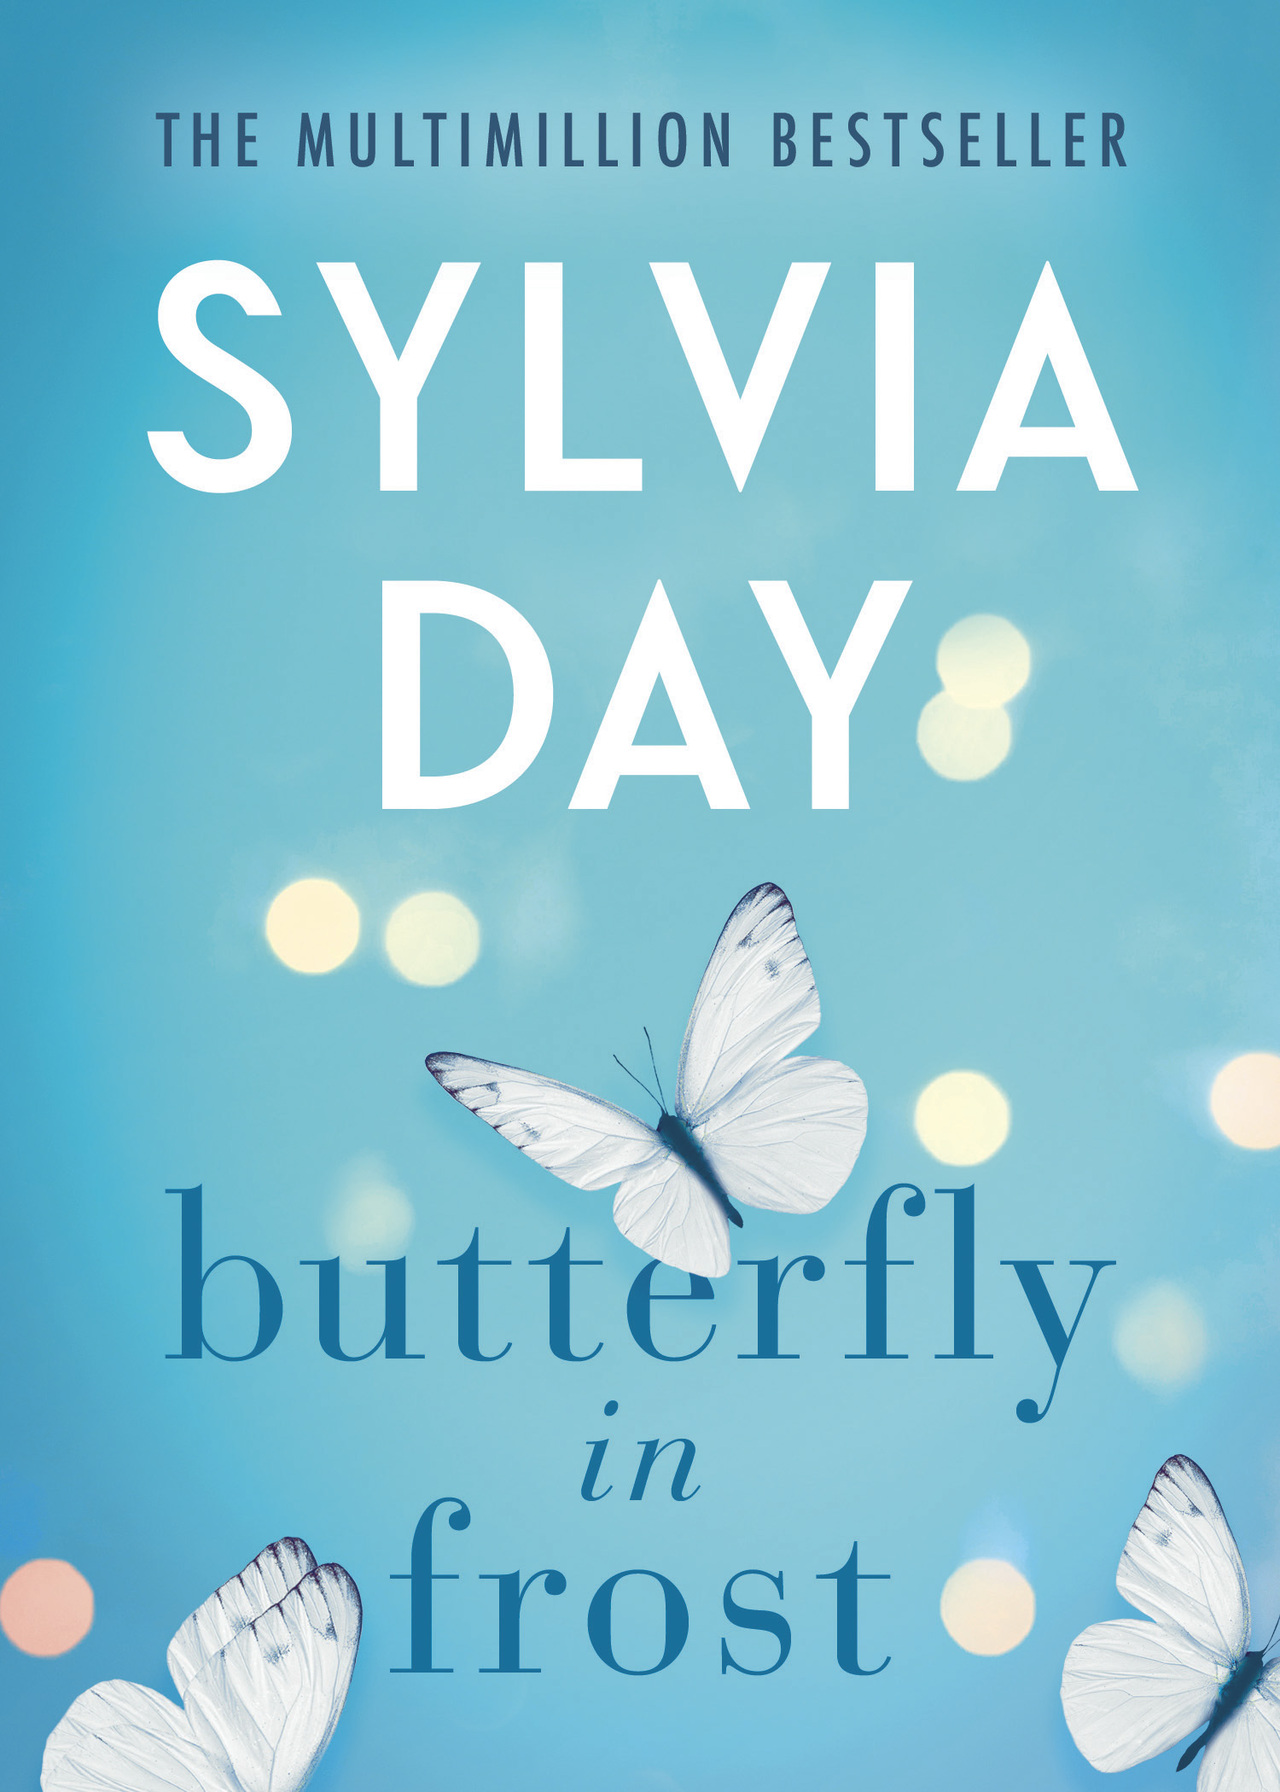 Day butterflyinfrost 28730 cv ft v5 2